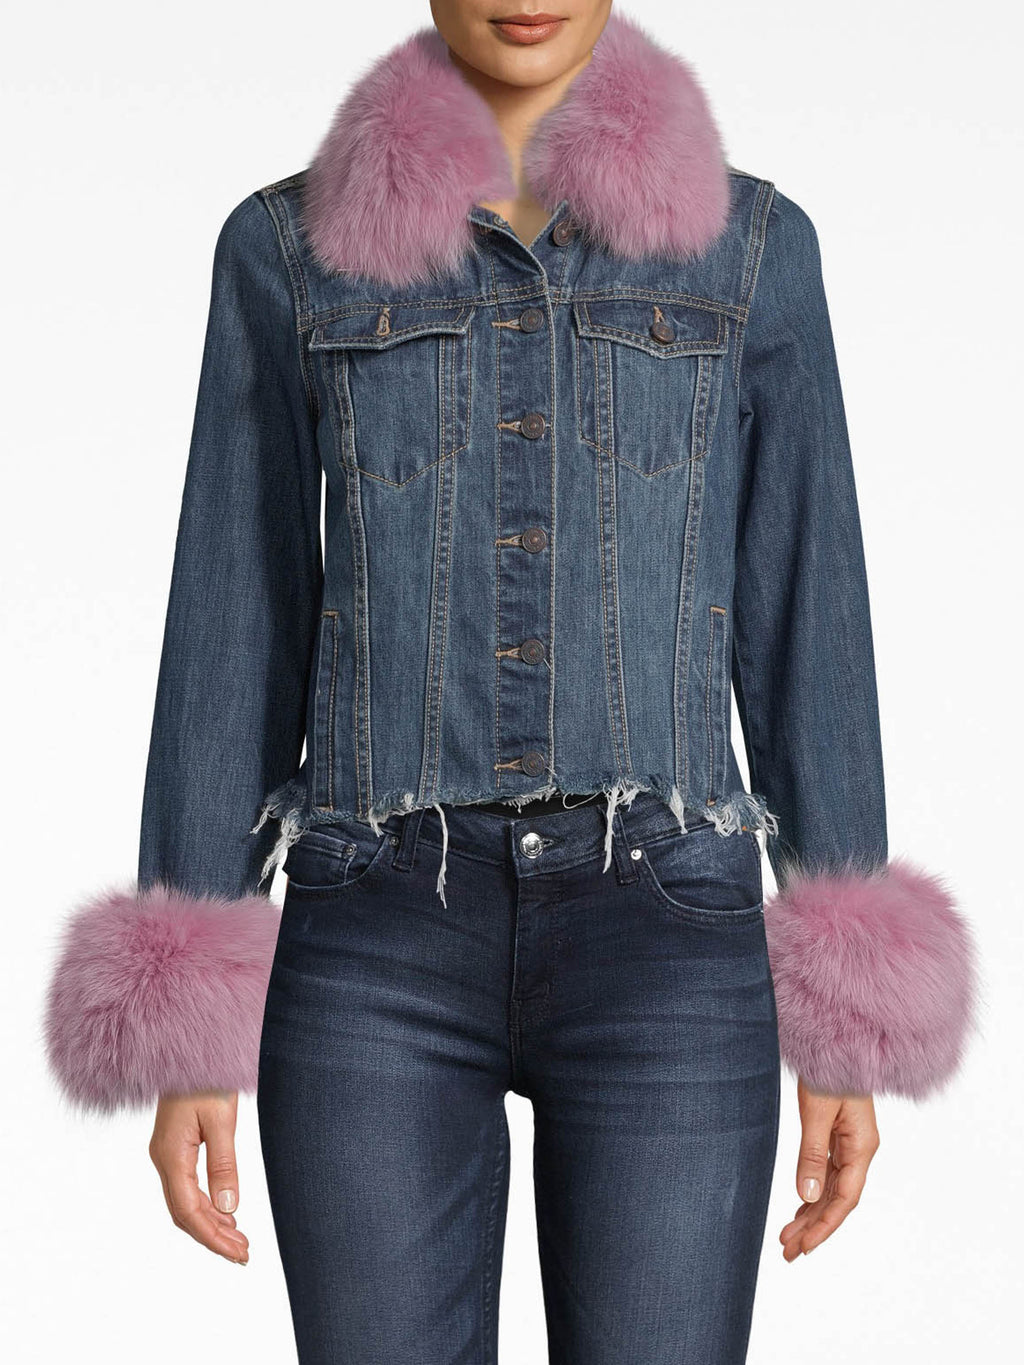 CF20020 - DENIM JACKET WITH FUR - outerwear - jackets - Your basic denim jacket needed an upgrade. Now, it's adorned with vibrant fur (choose from light pink or red) on the collar and sleeves. Our embroidered dragon is featured on the back, while the hem's frayed edges and slight crop are unexpected details.